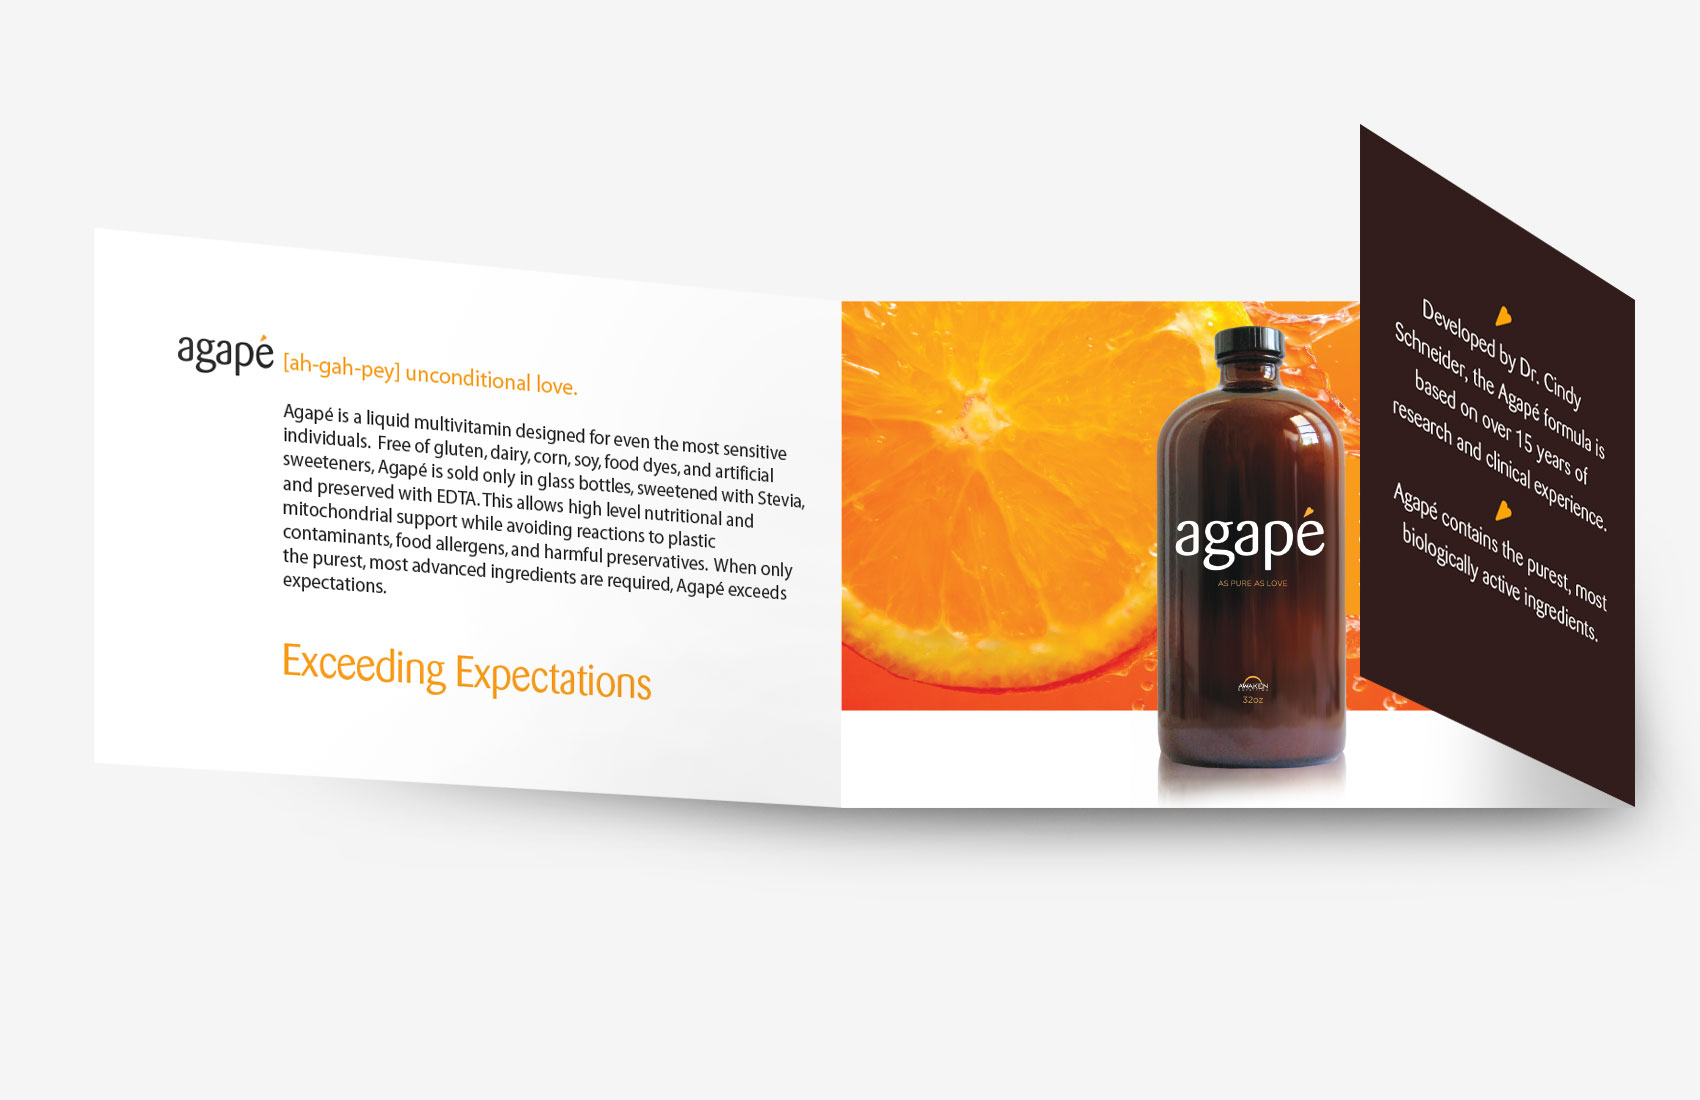 agape-gatefold-mock-up